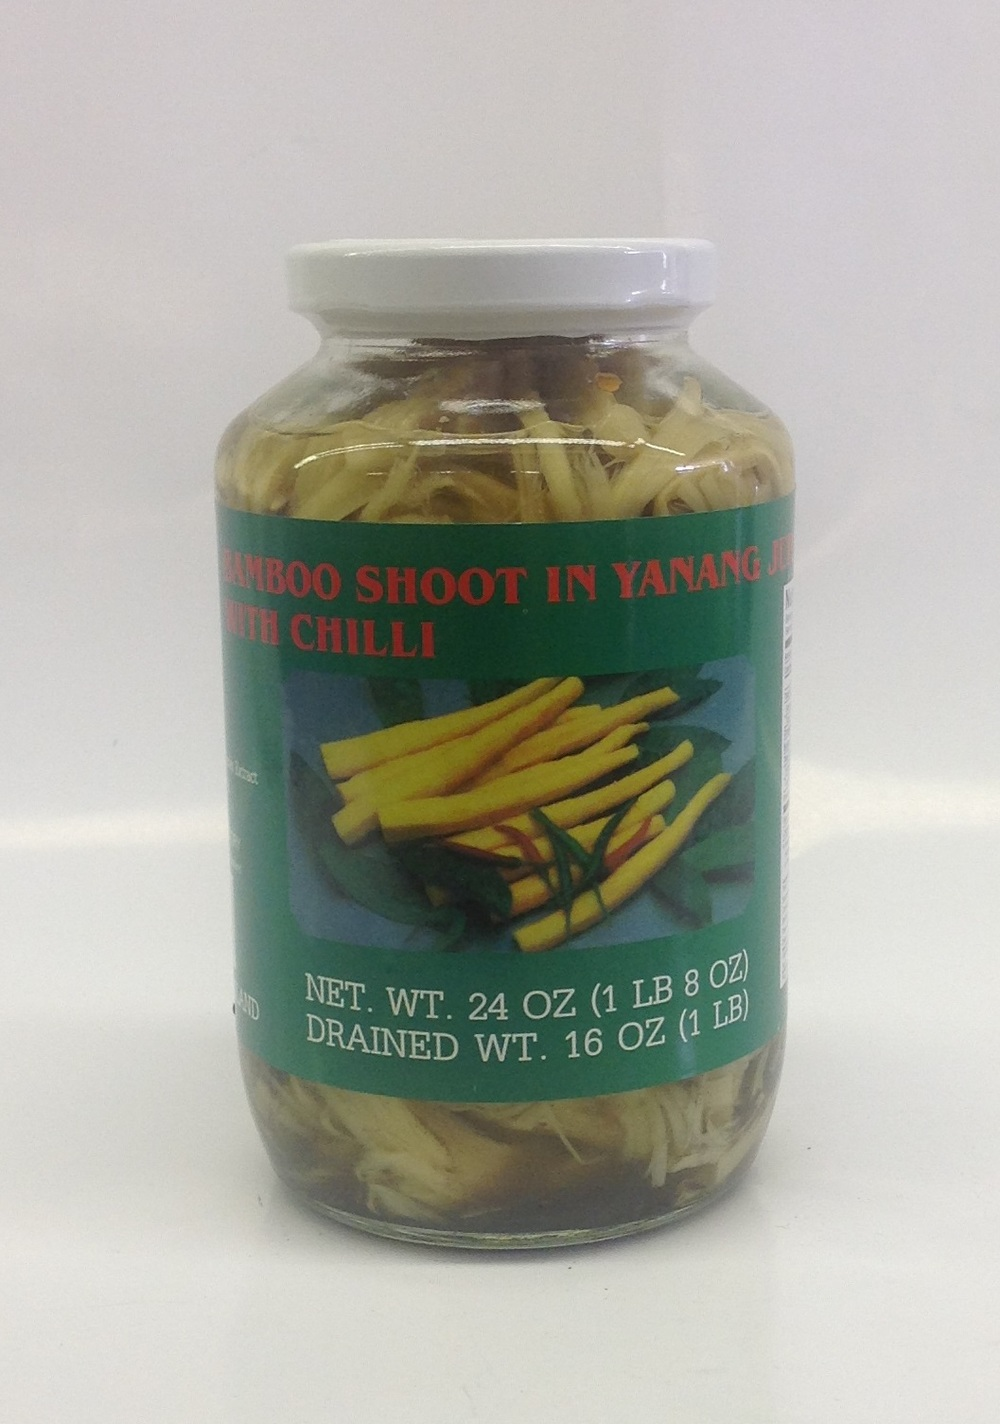 Bamboo Shoot in Yanang with Chilli    Parrot   BBY1260 12x24 oz